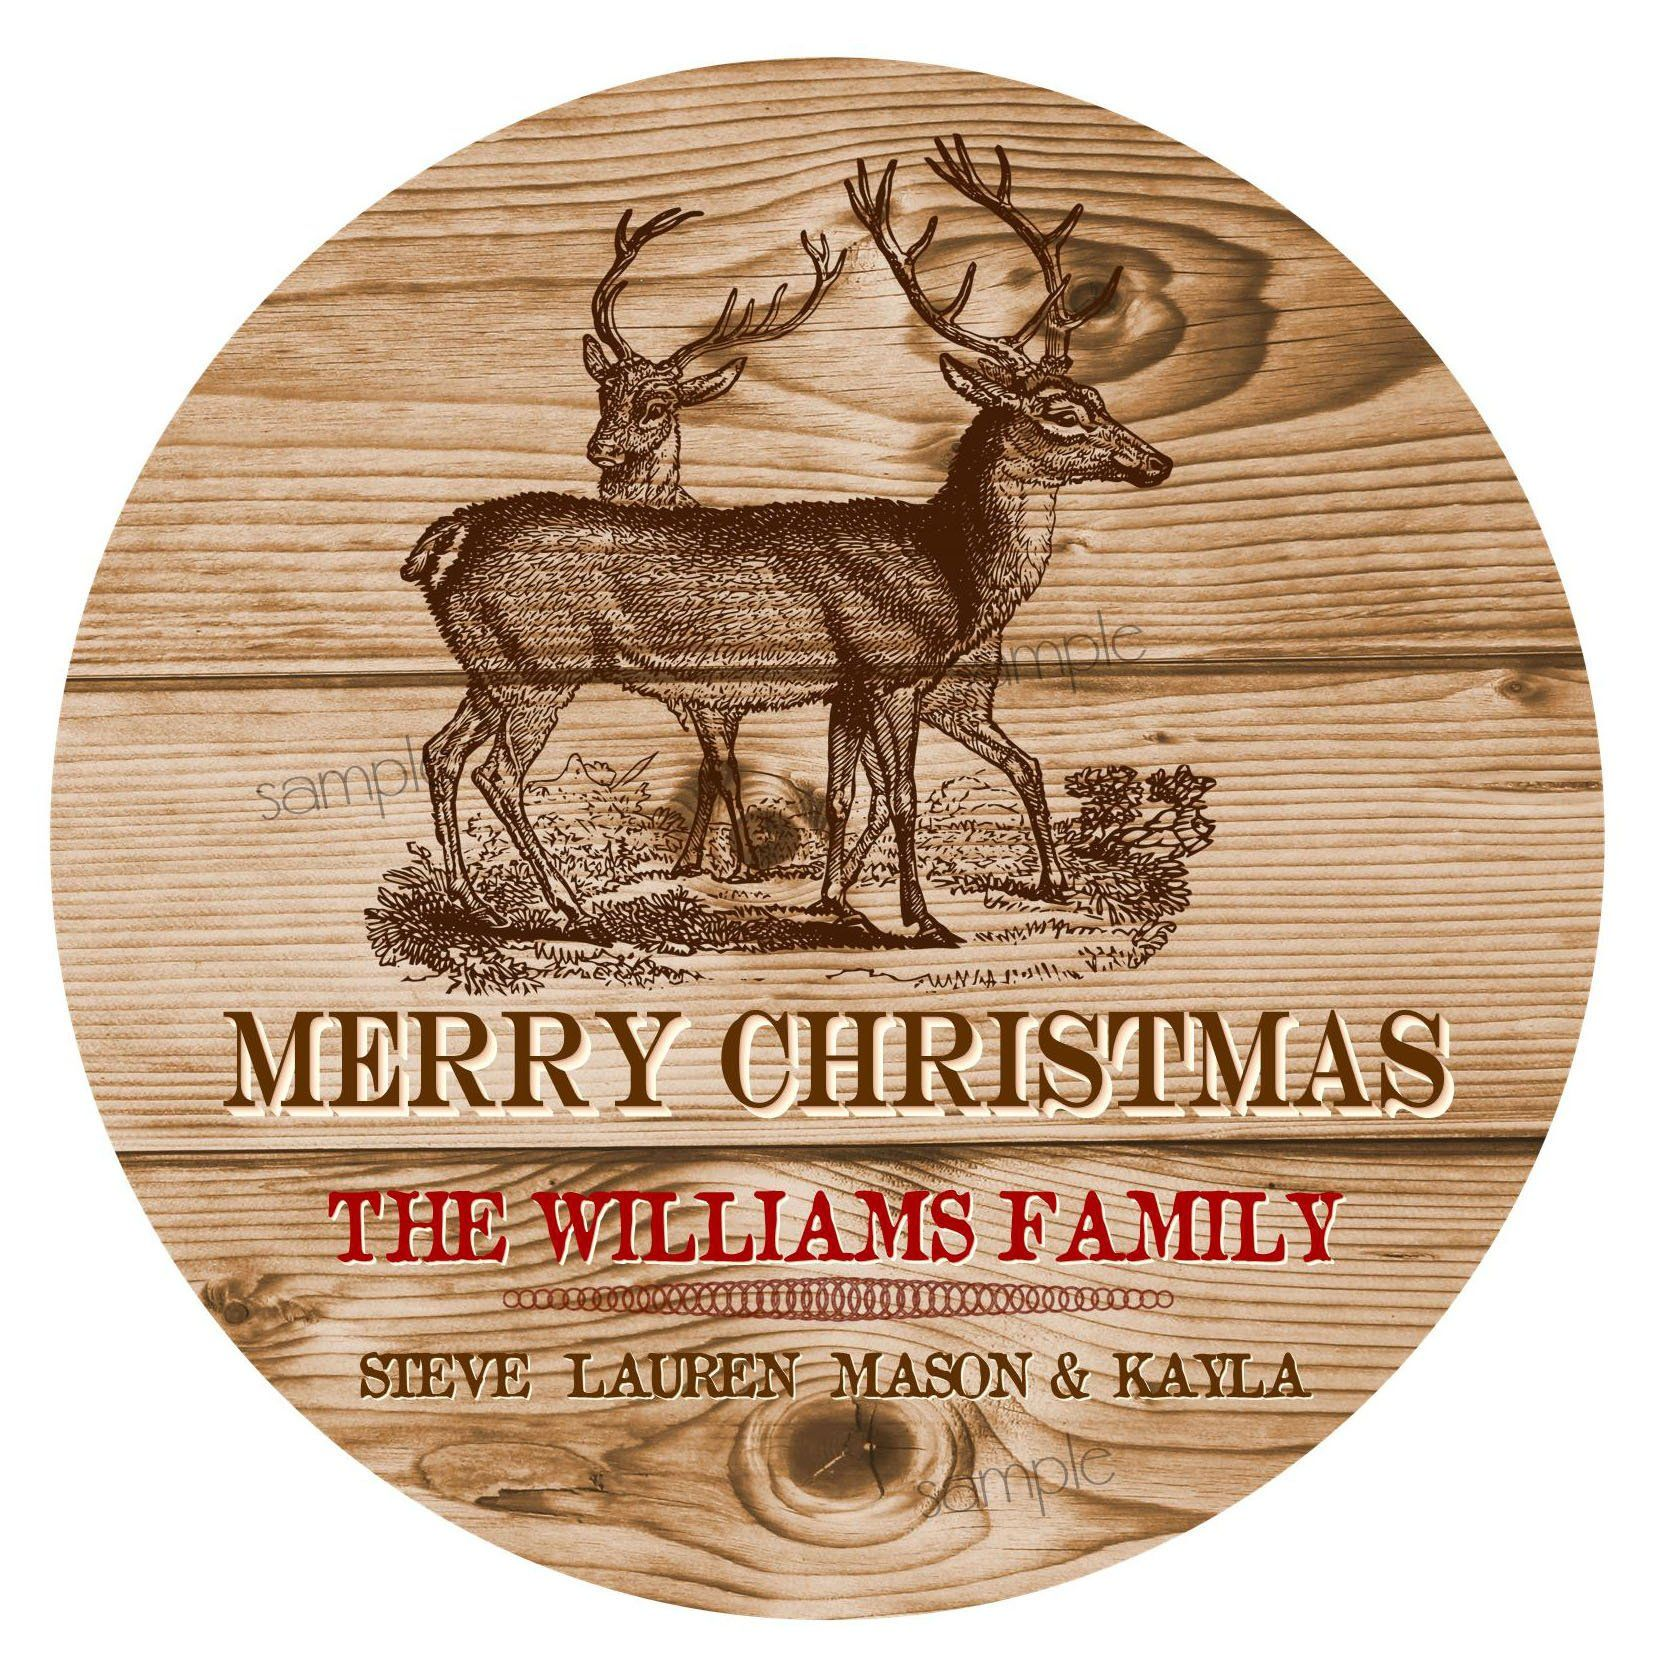 Christmas Gift Stickers, Woodland Christmas Labels, Rustic Christmas stickers, Deer, Wood burning , Wood stencil, Gift Wrap Labels #burnedwoodstenciling